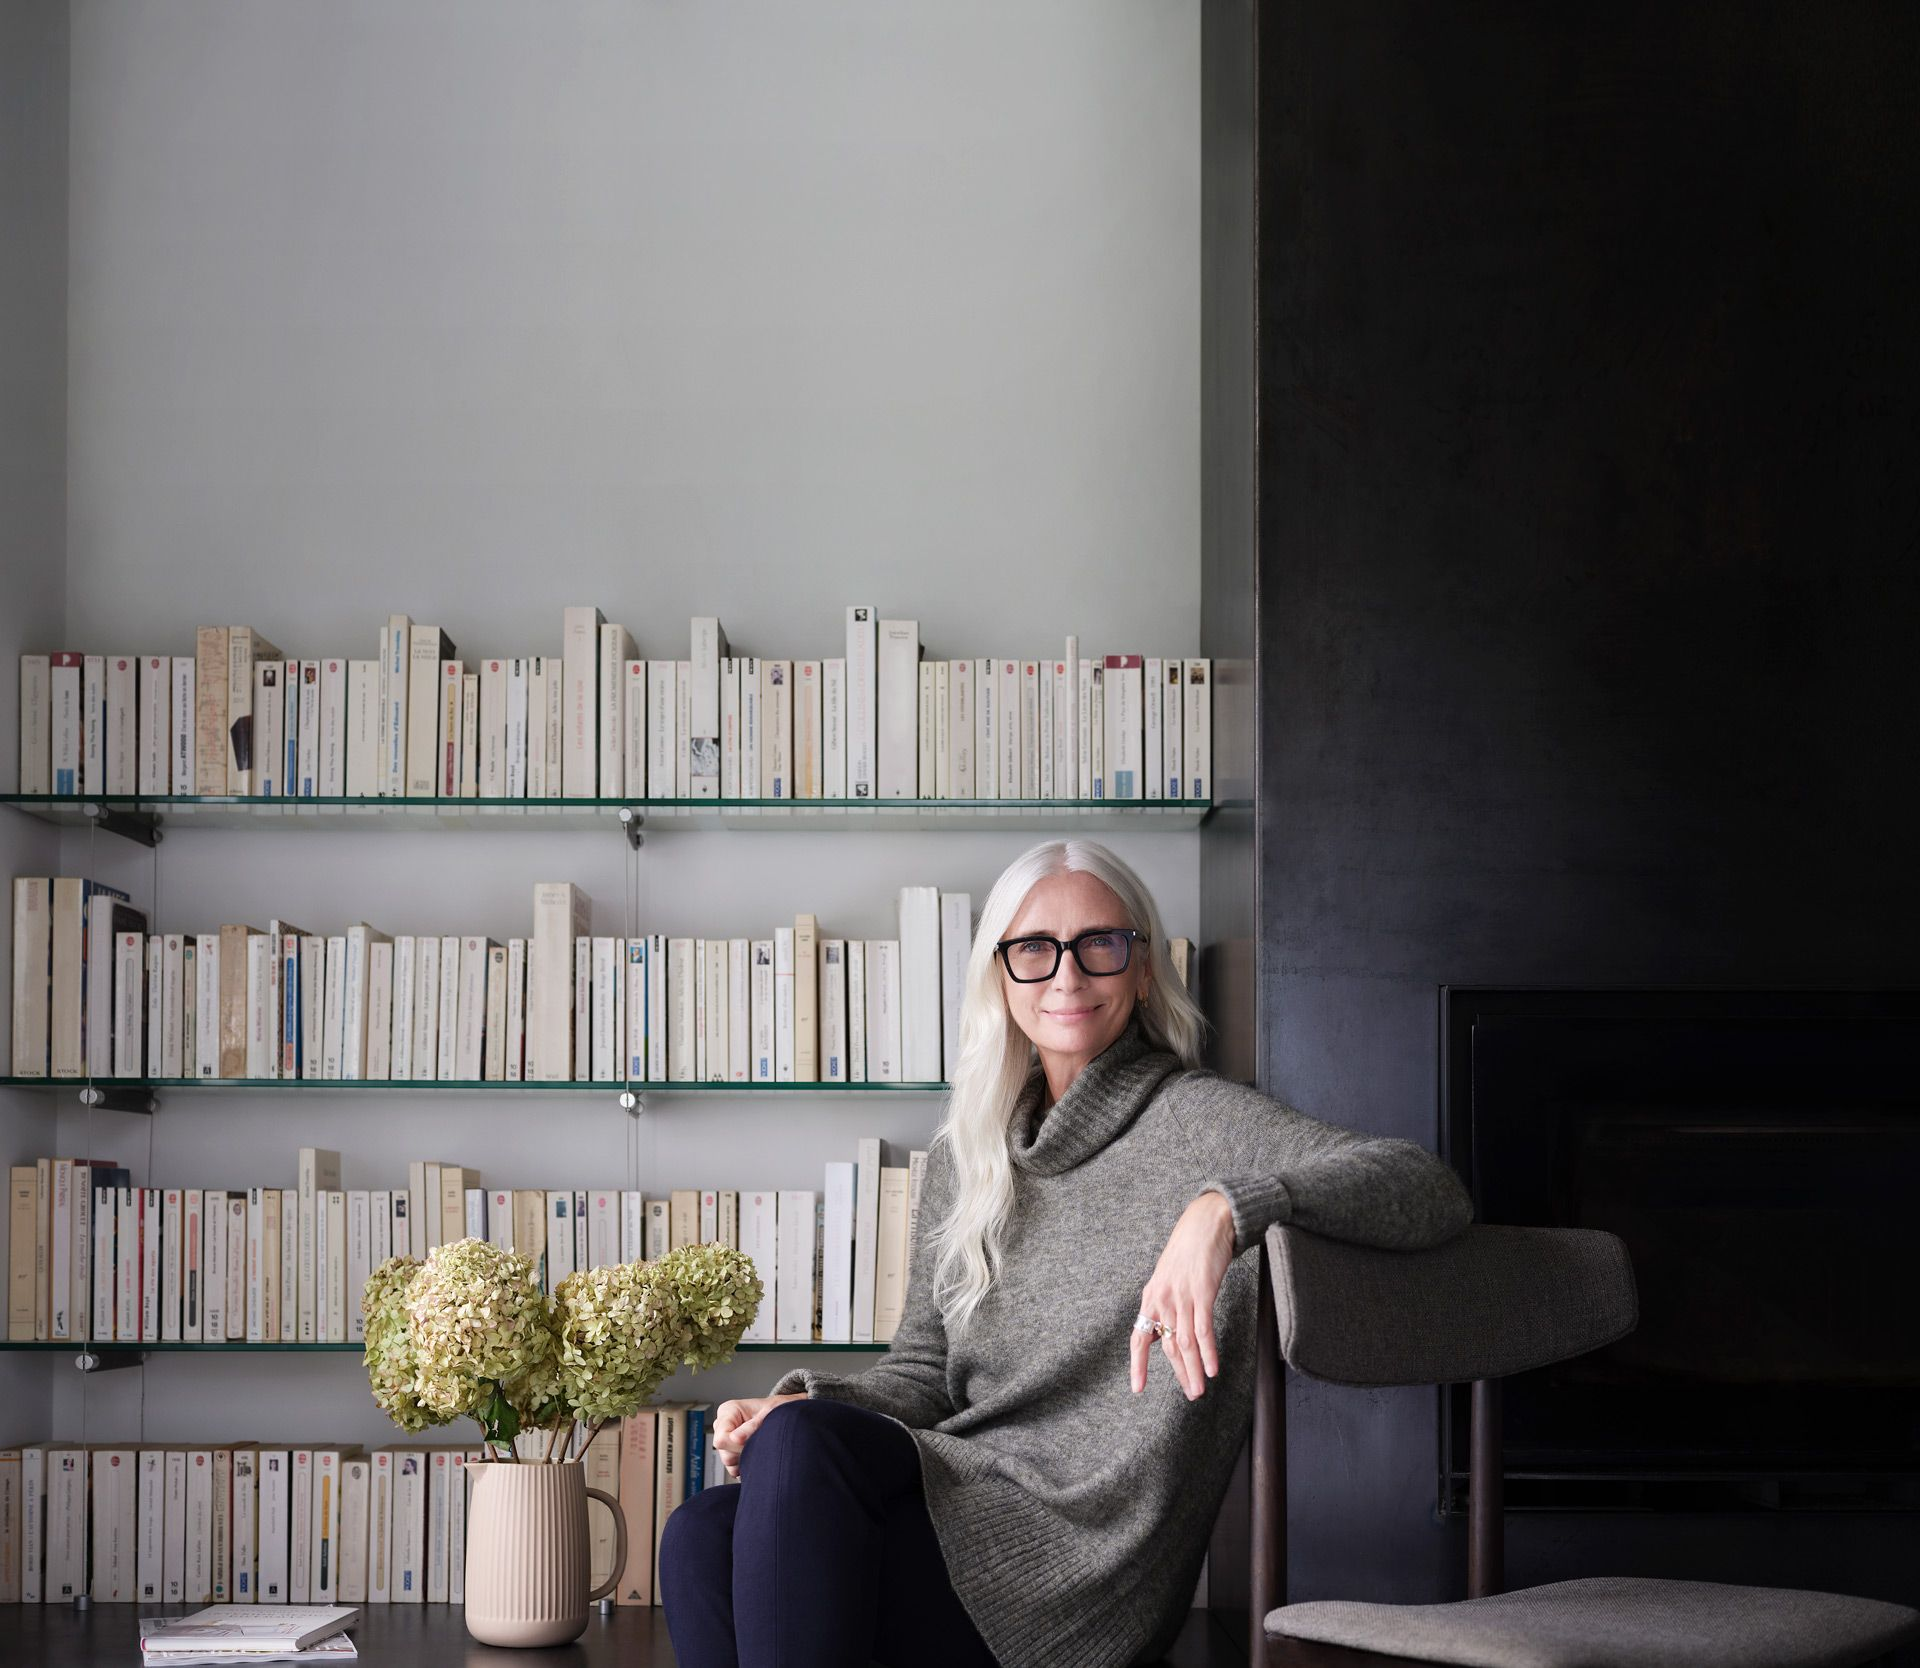 middle aged woman with long white hair sitting on chair in front of her carefully placed library wearing long comfy grey sweater and dark blue leggings smiling looking at camera photographed by Maxyme G Delisle for Desjardins campaign with Bleu Blanc Rouge